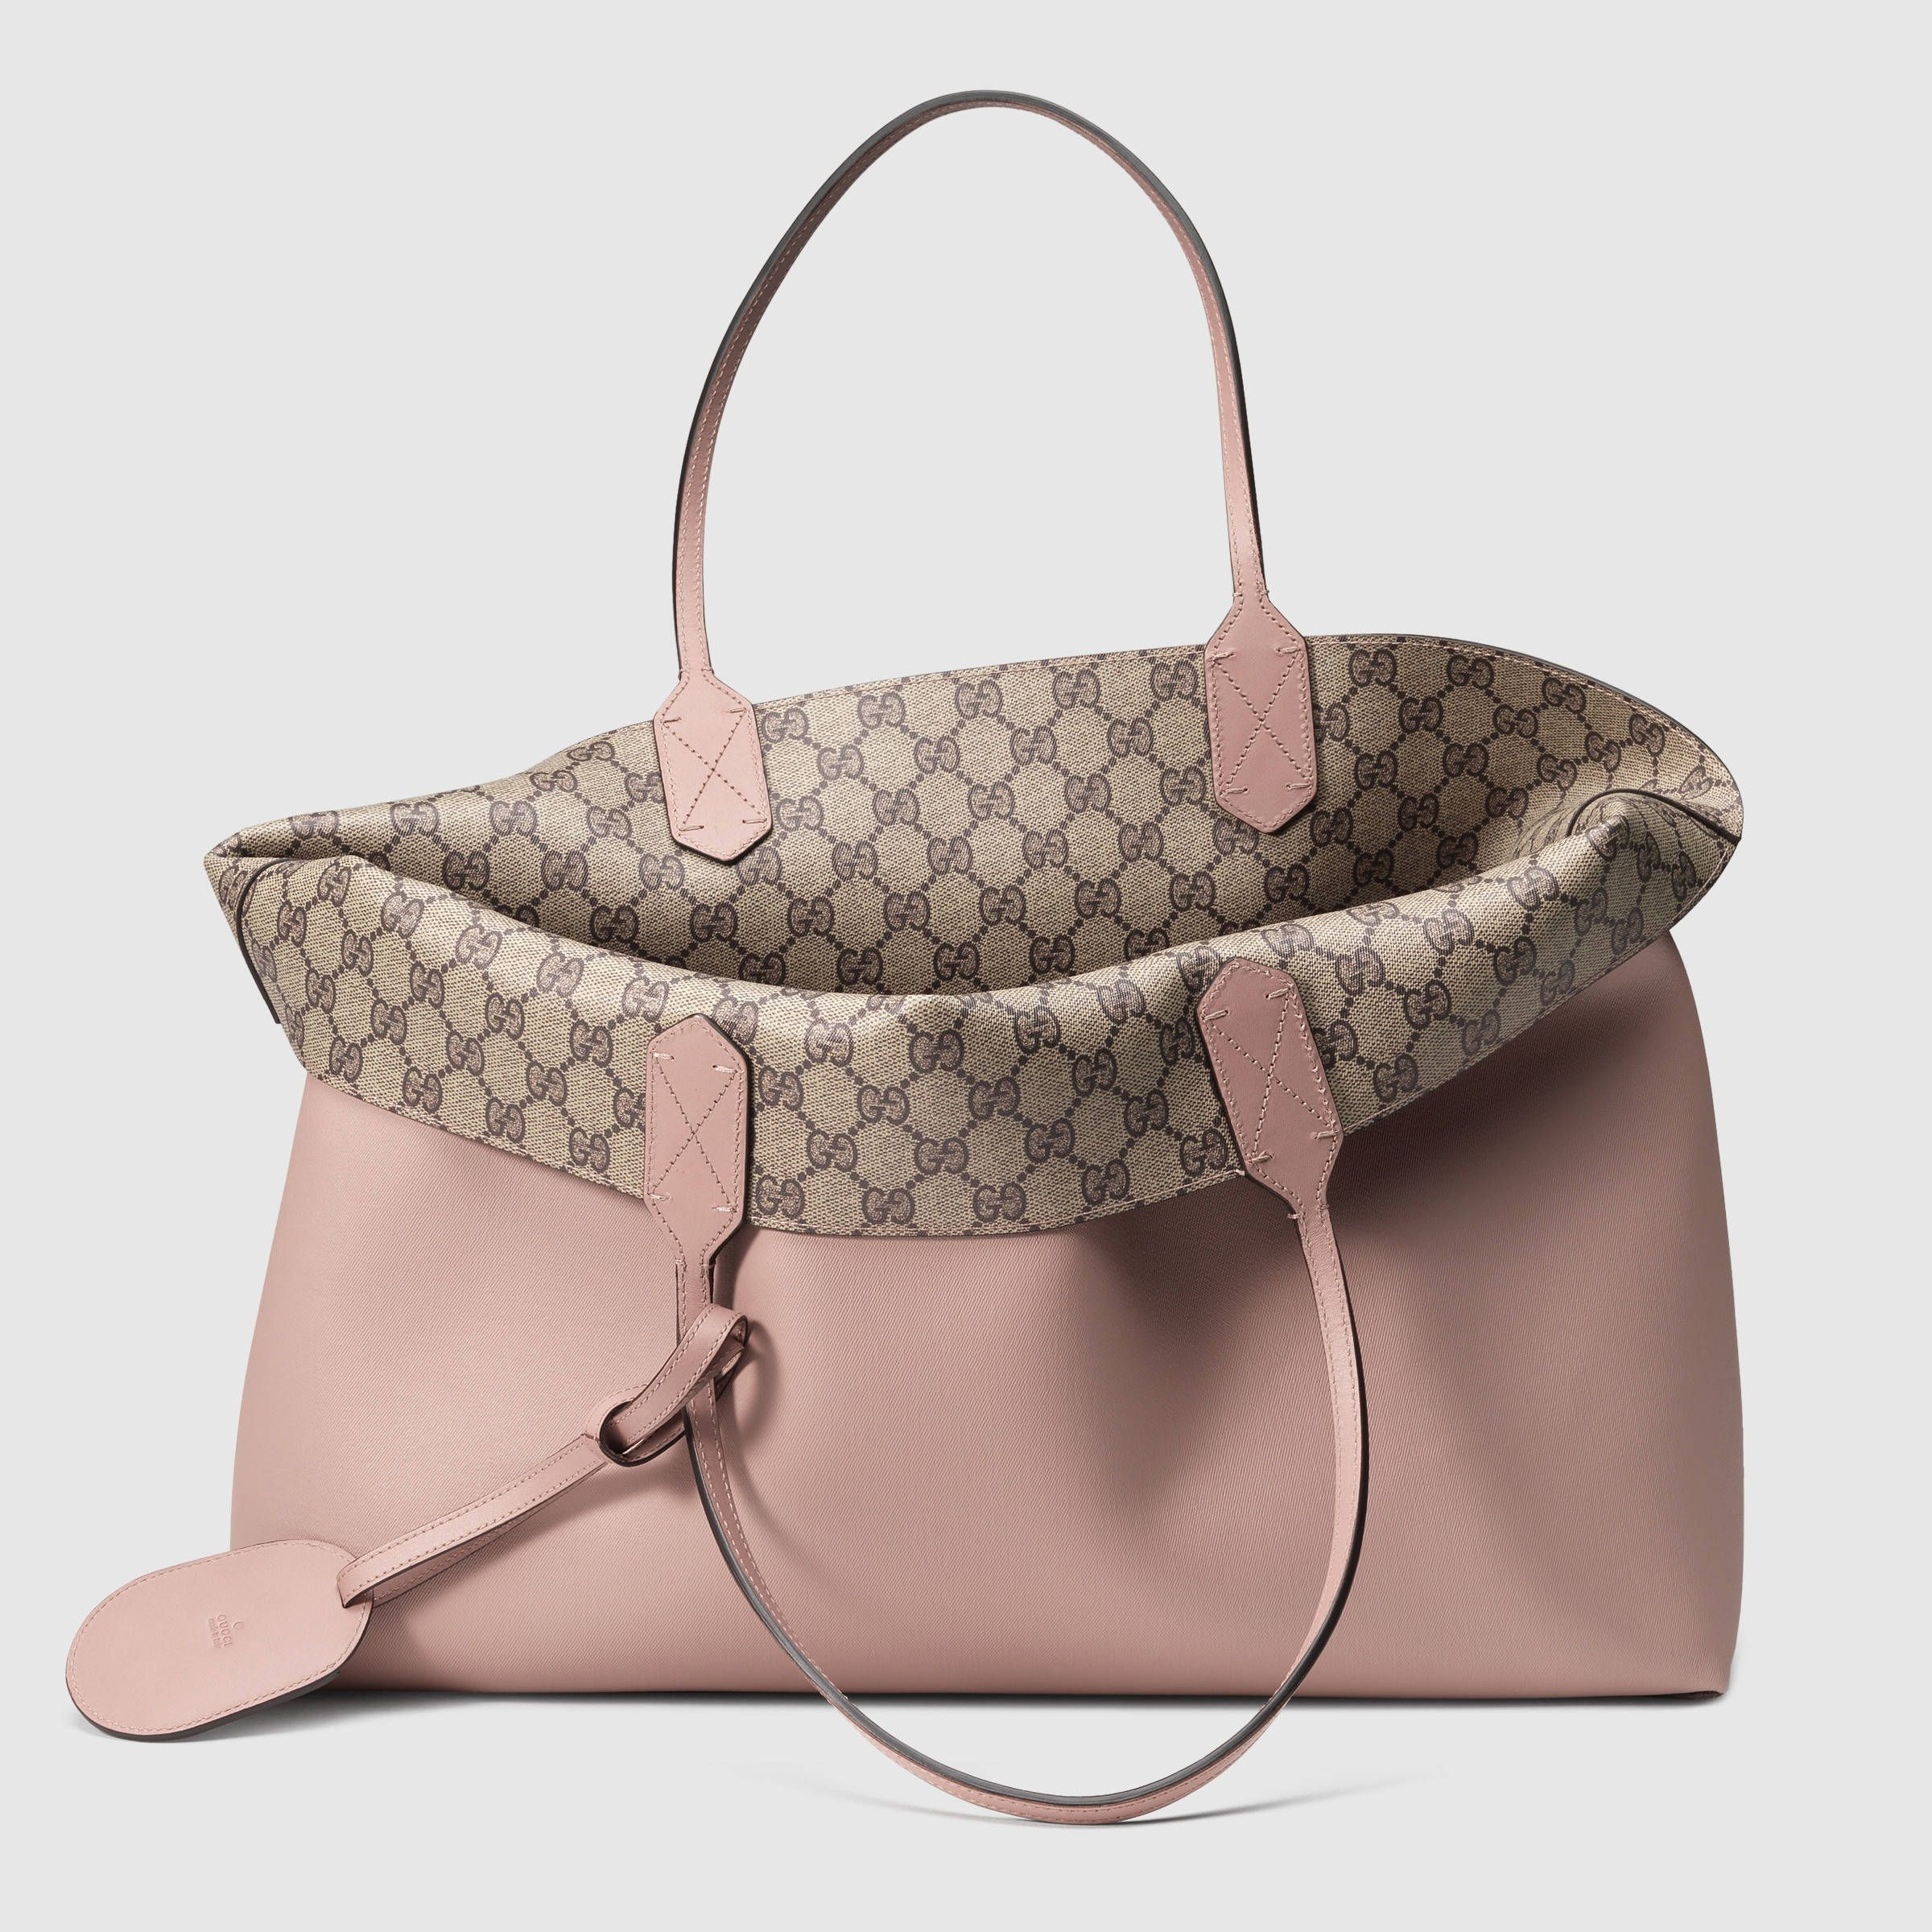 Gucci Women - Reversible GG leather tote -  1 3fed0fe9b6